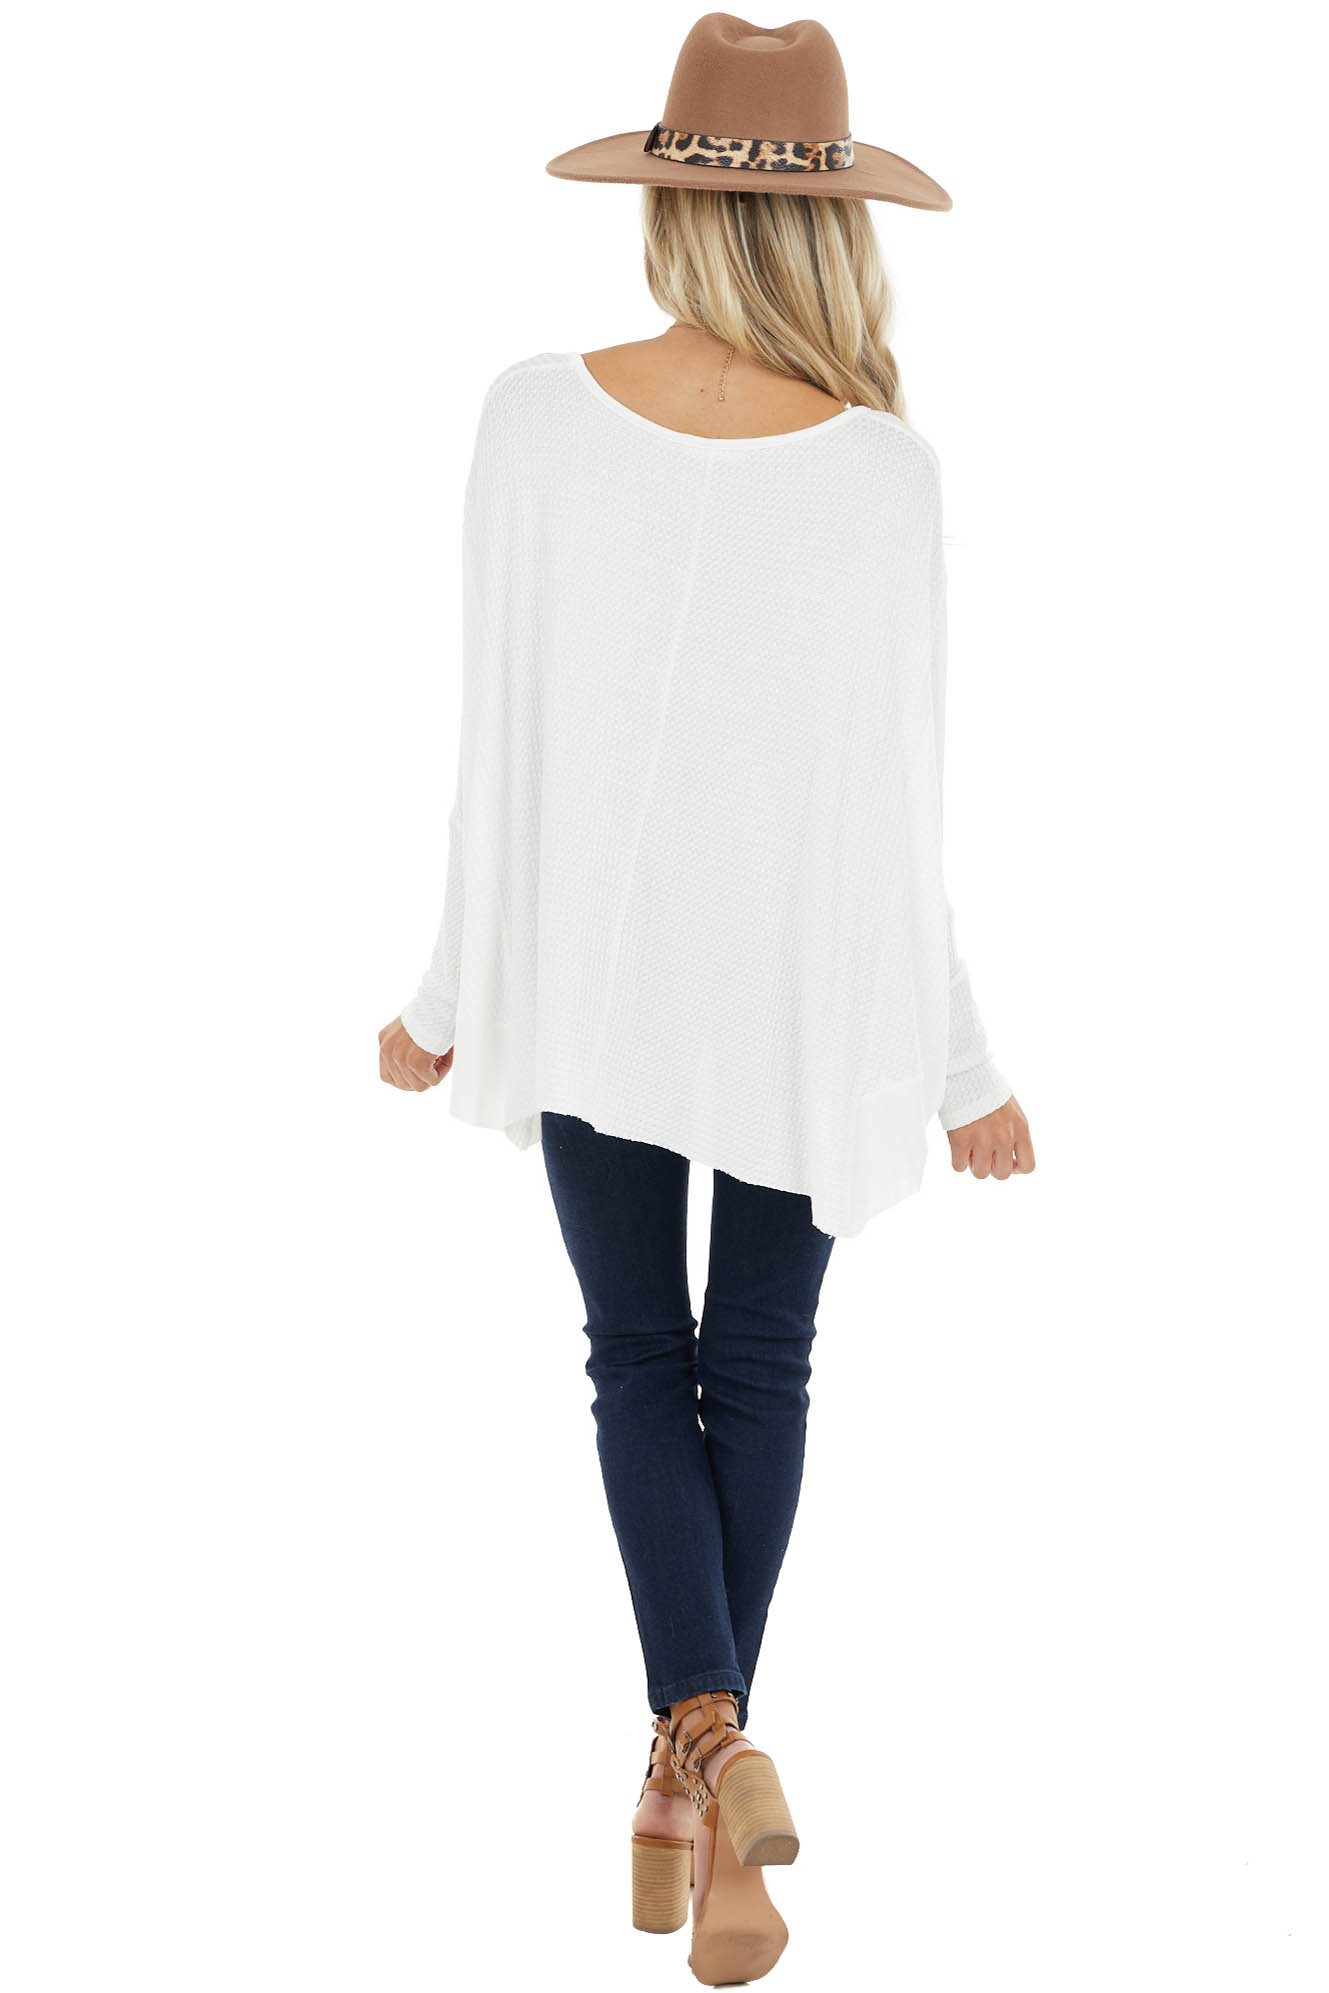 Off White Oversized Thermal Knit Long Sleeve Top